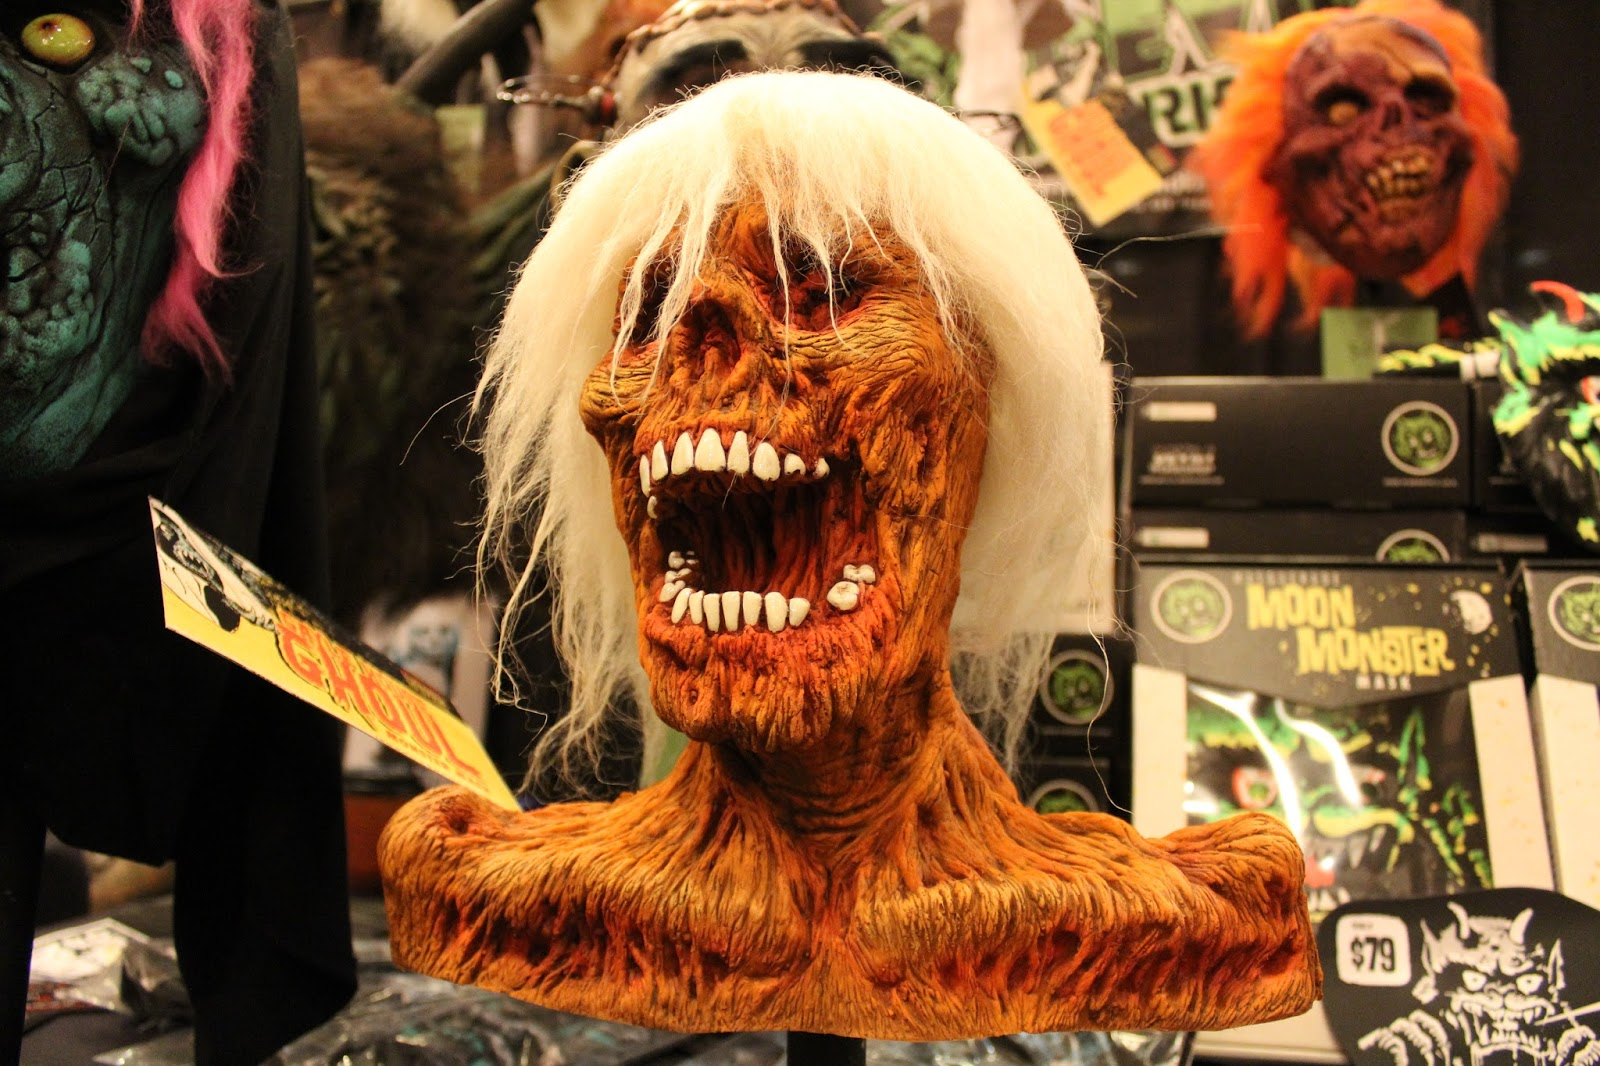 The Cryptic Corridor: Mask-Fest 2015